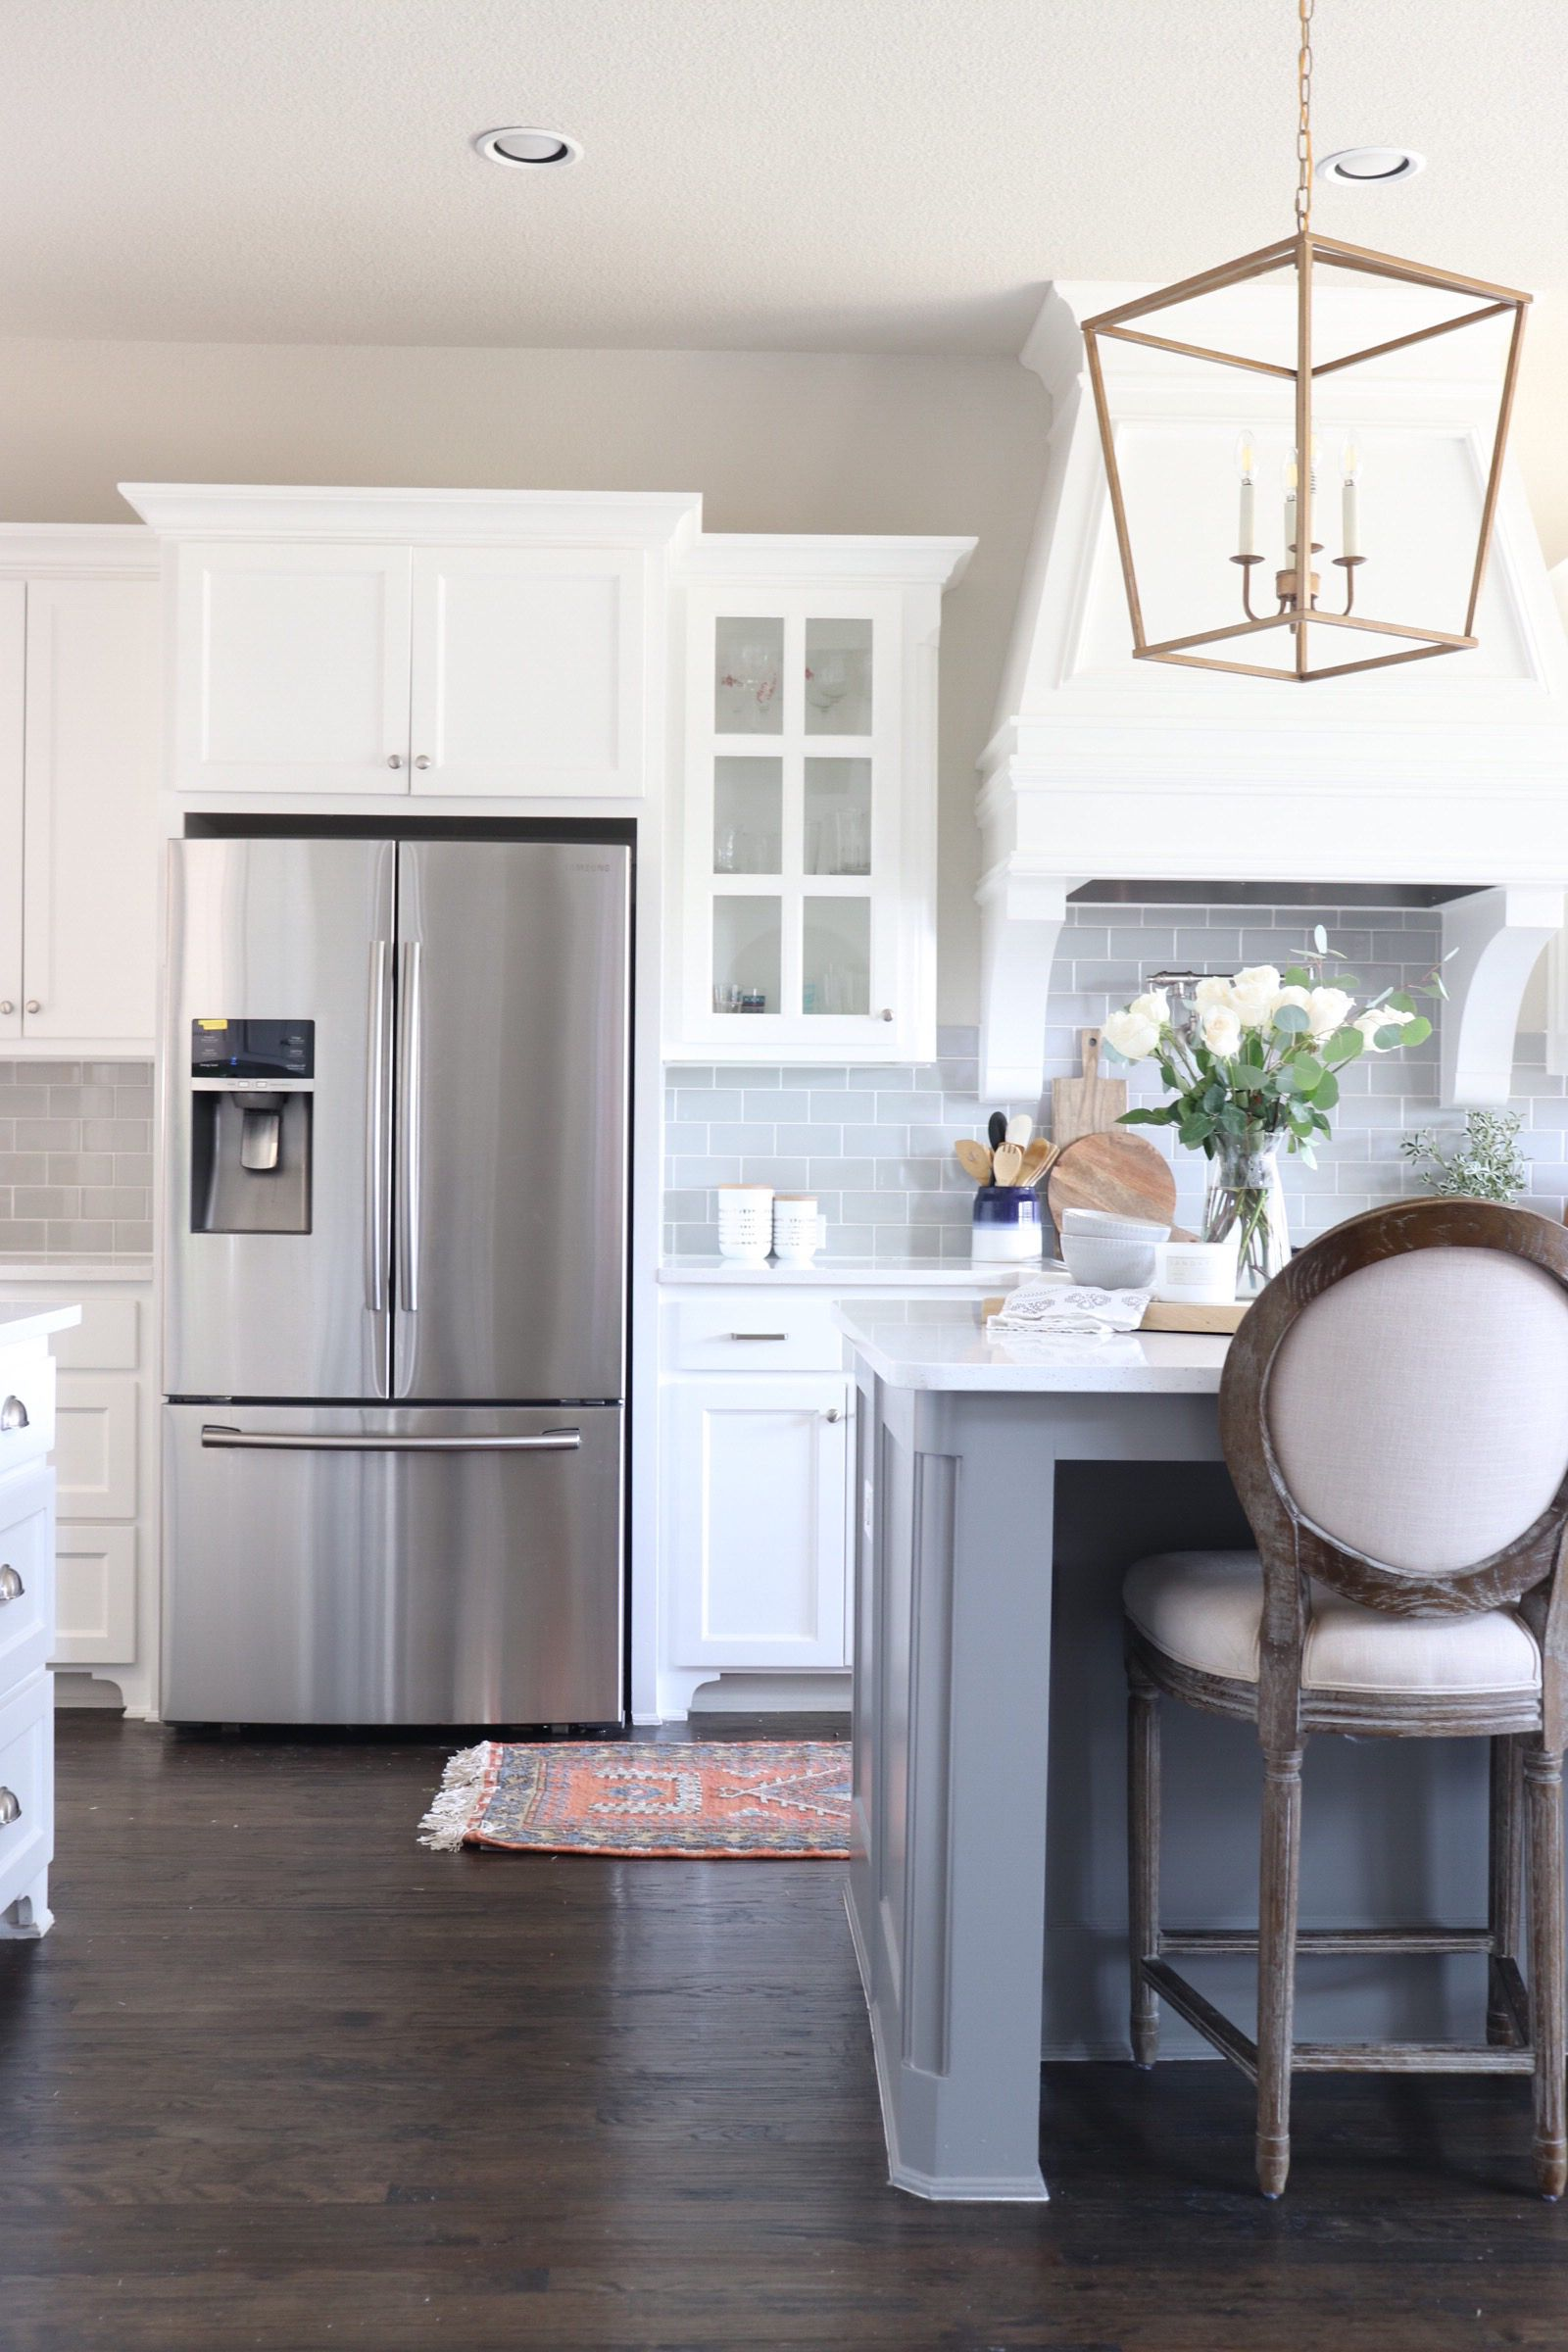 HOW I REPAINTED OUR KITCHEN (With images